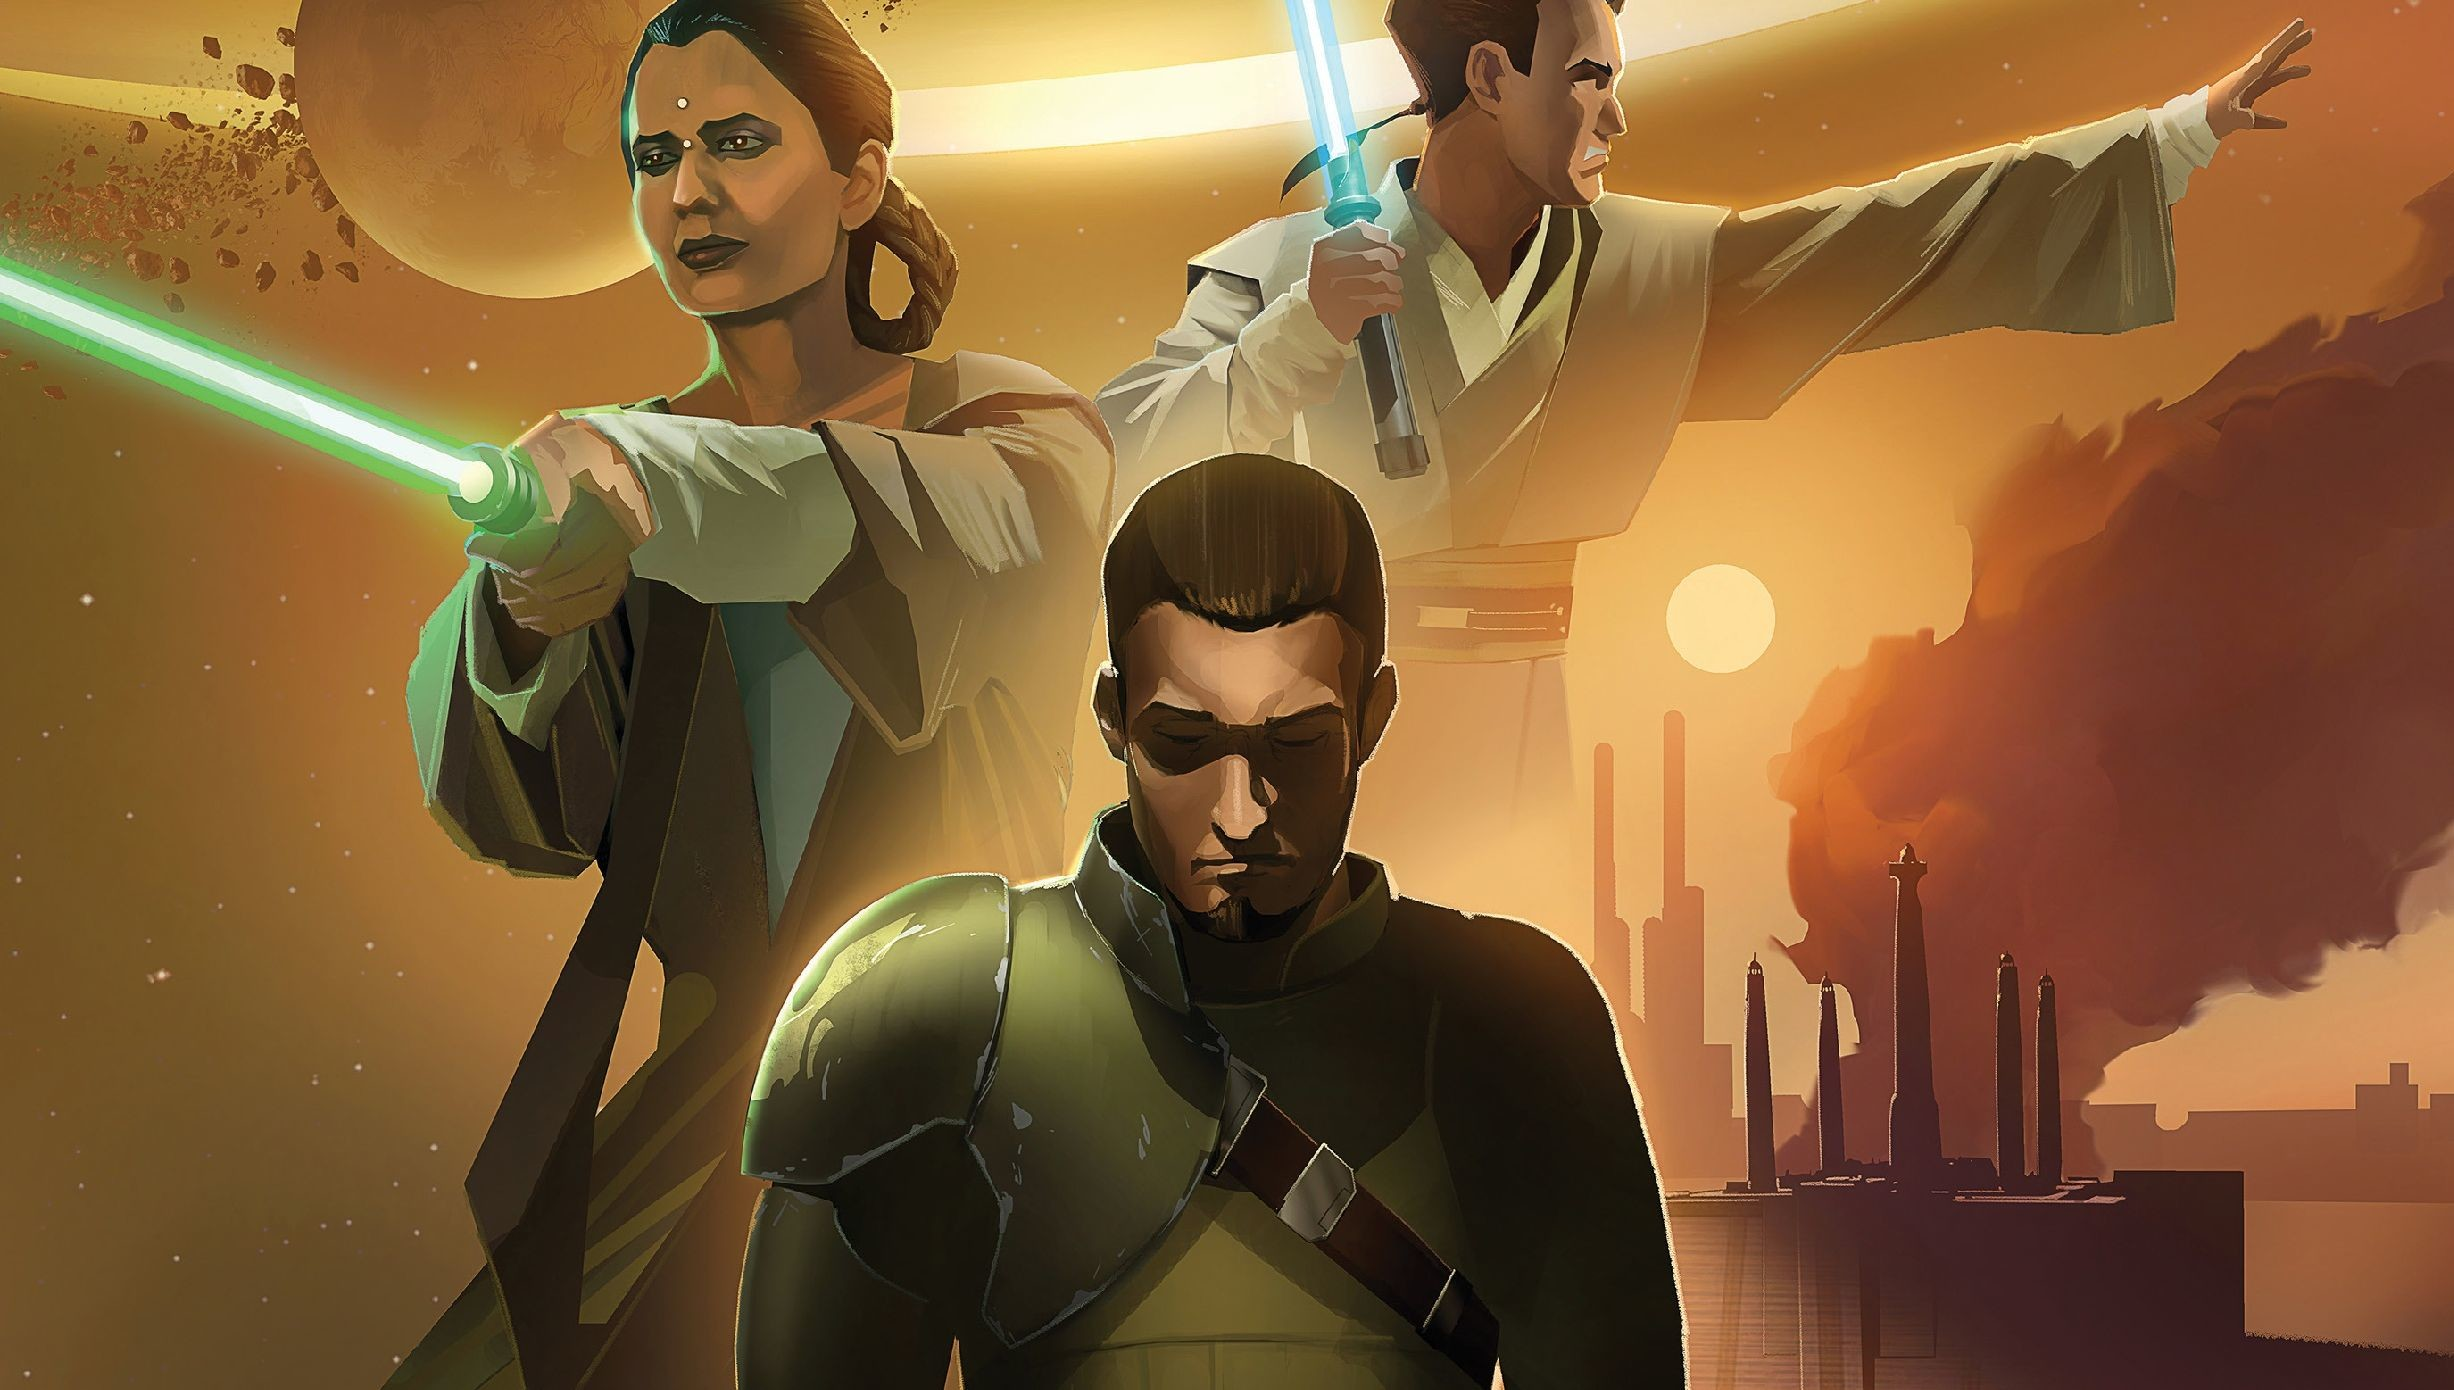 Star Wars Rebels HD Wallpapers 84 Images